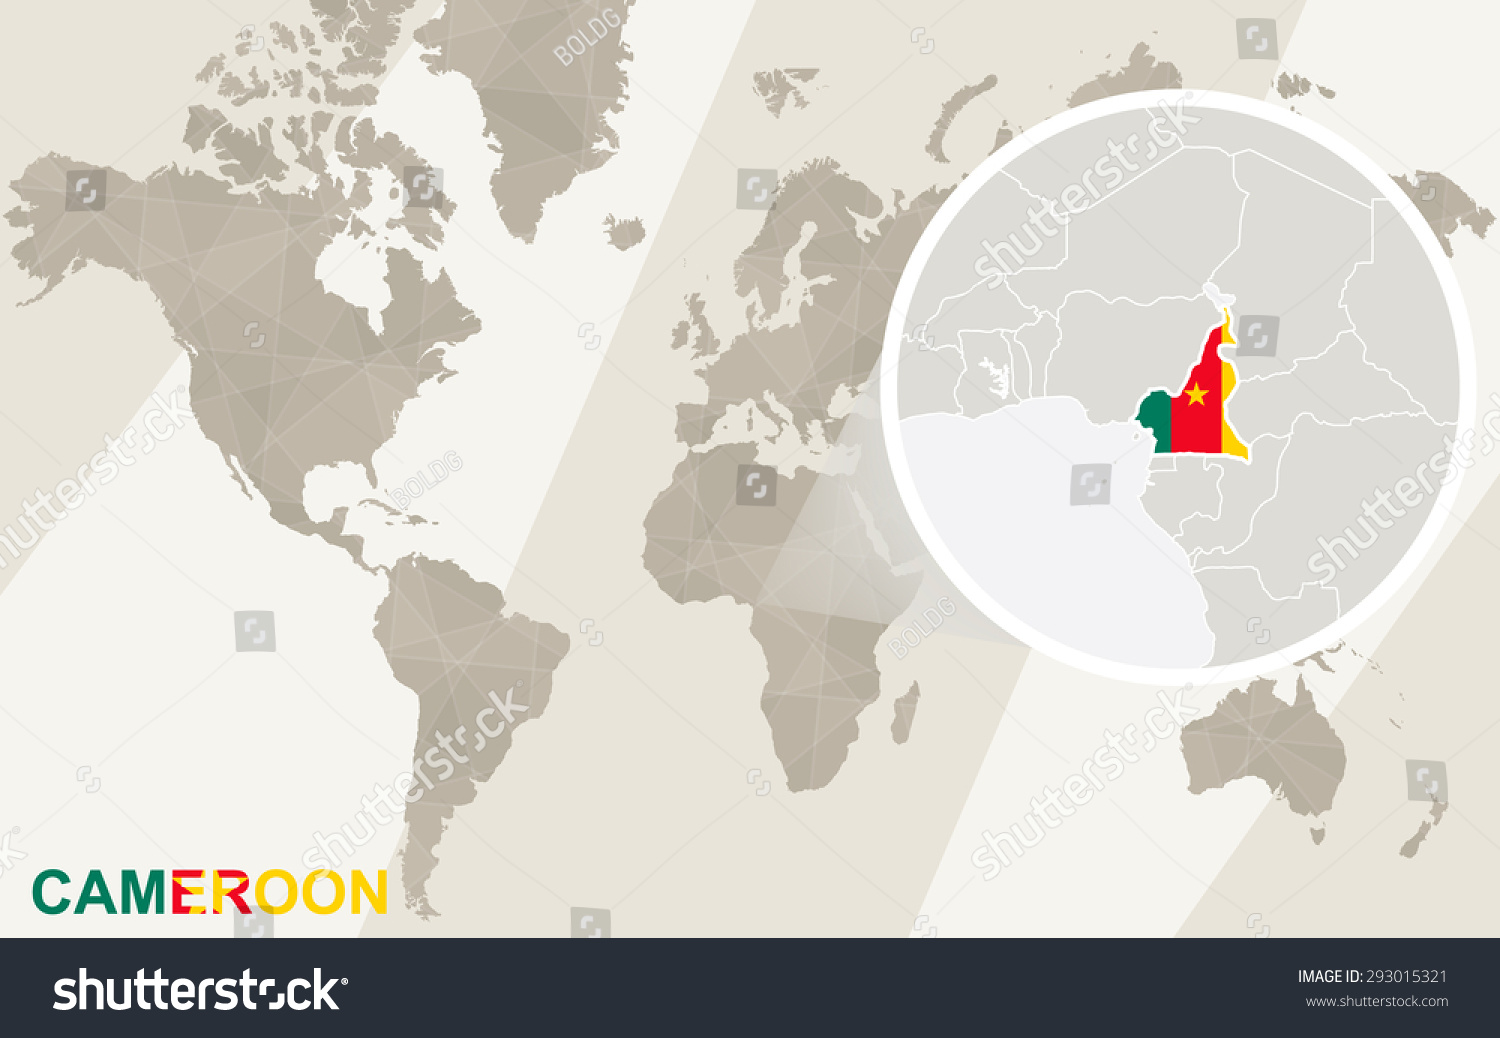 Zoom On Cameroon Map Flag World Stock Vector (Royalty Free ...